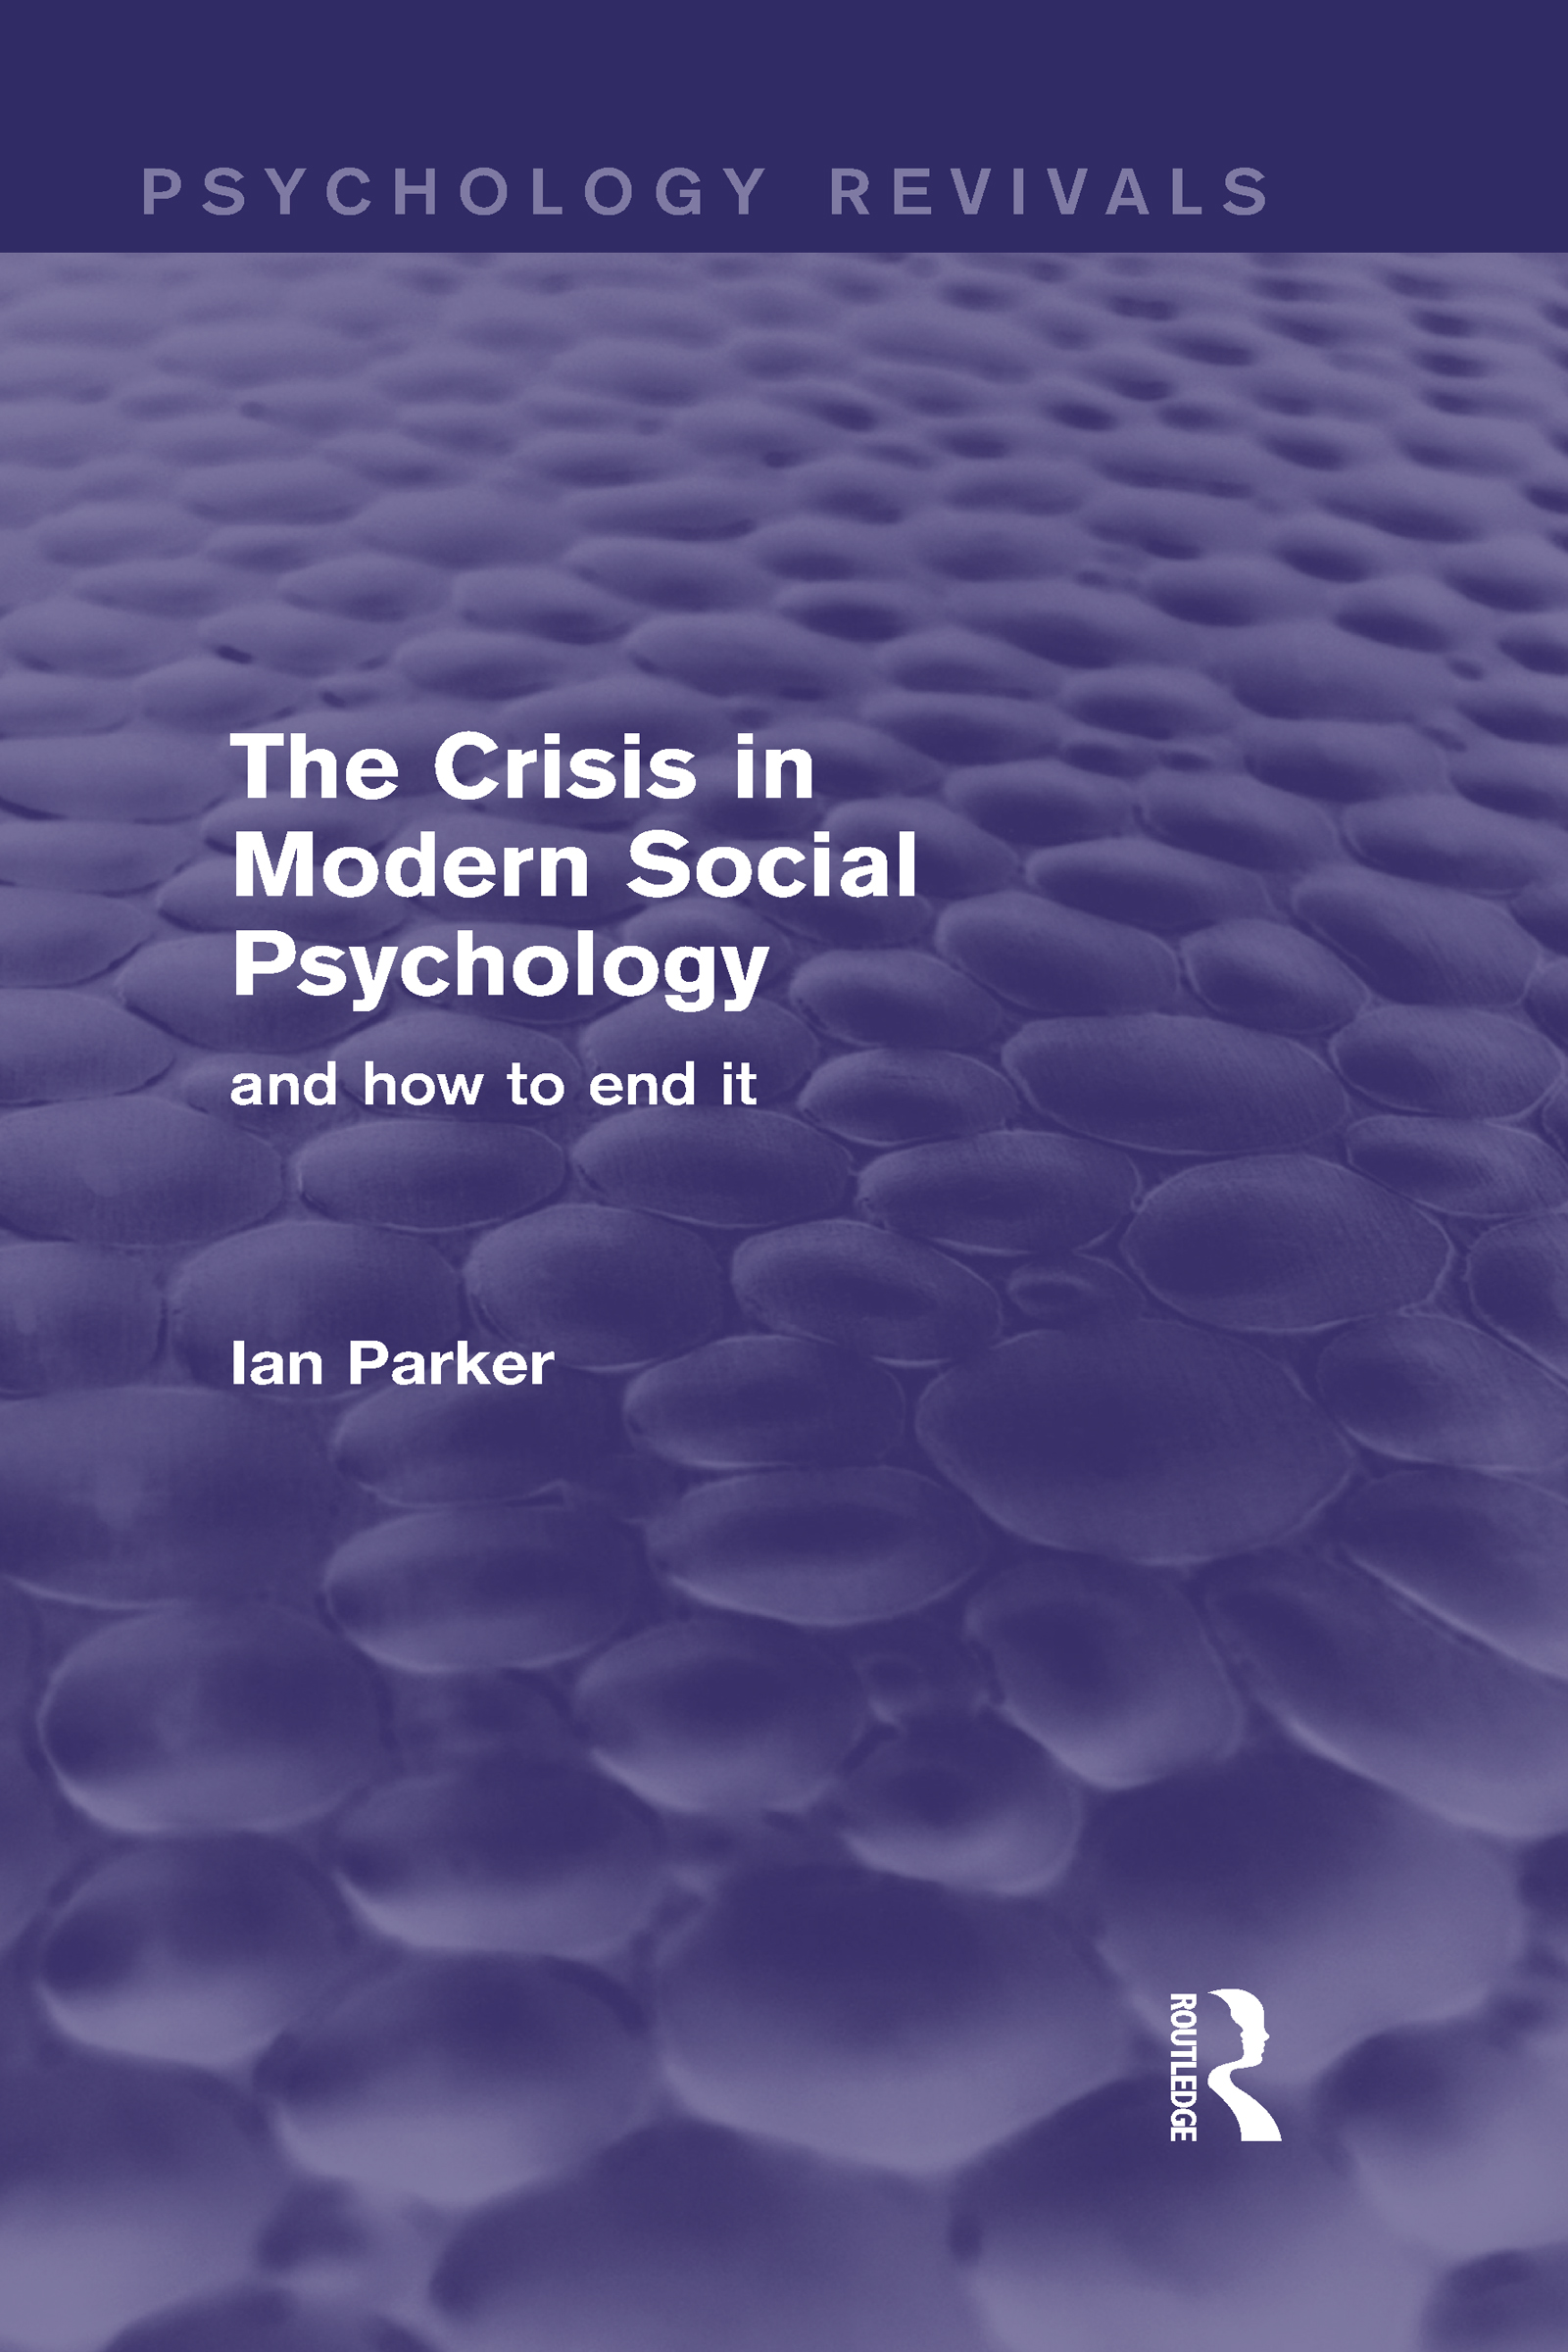 The Crisis in Modern Social Psychology (Psychology Revivals): and how to end it (Hardback) book cover